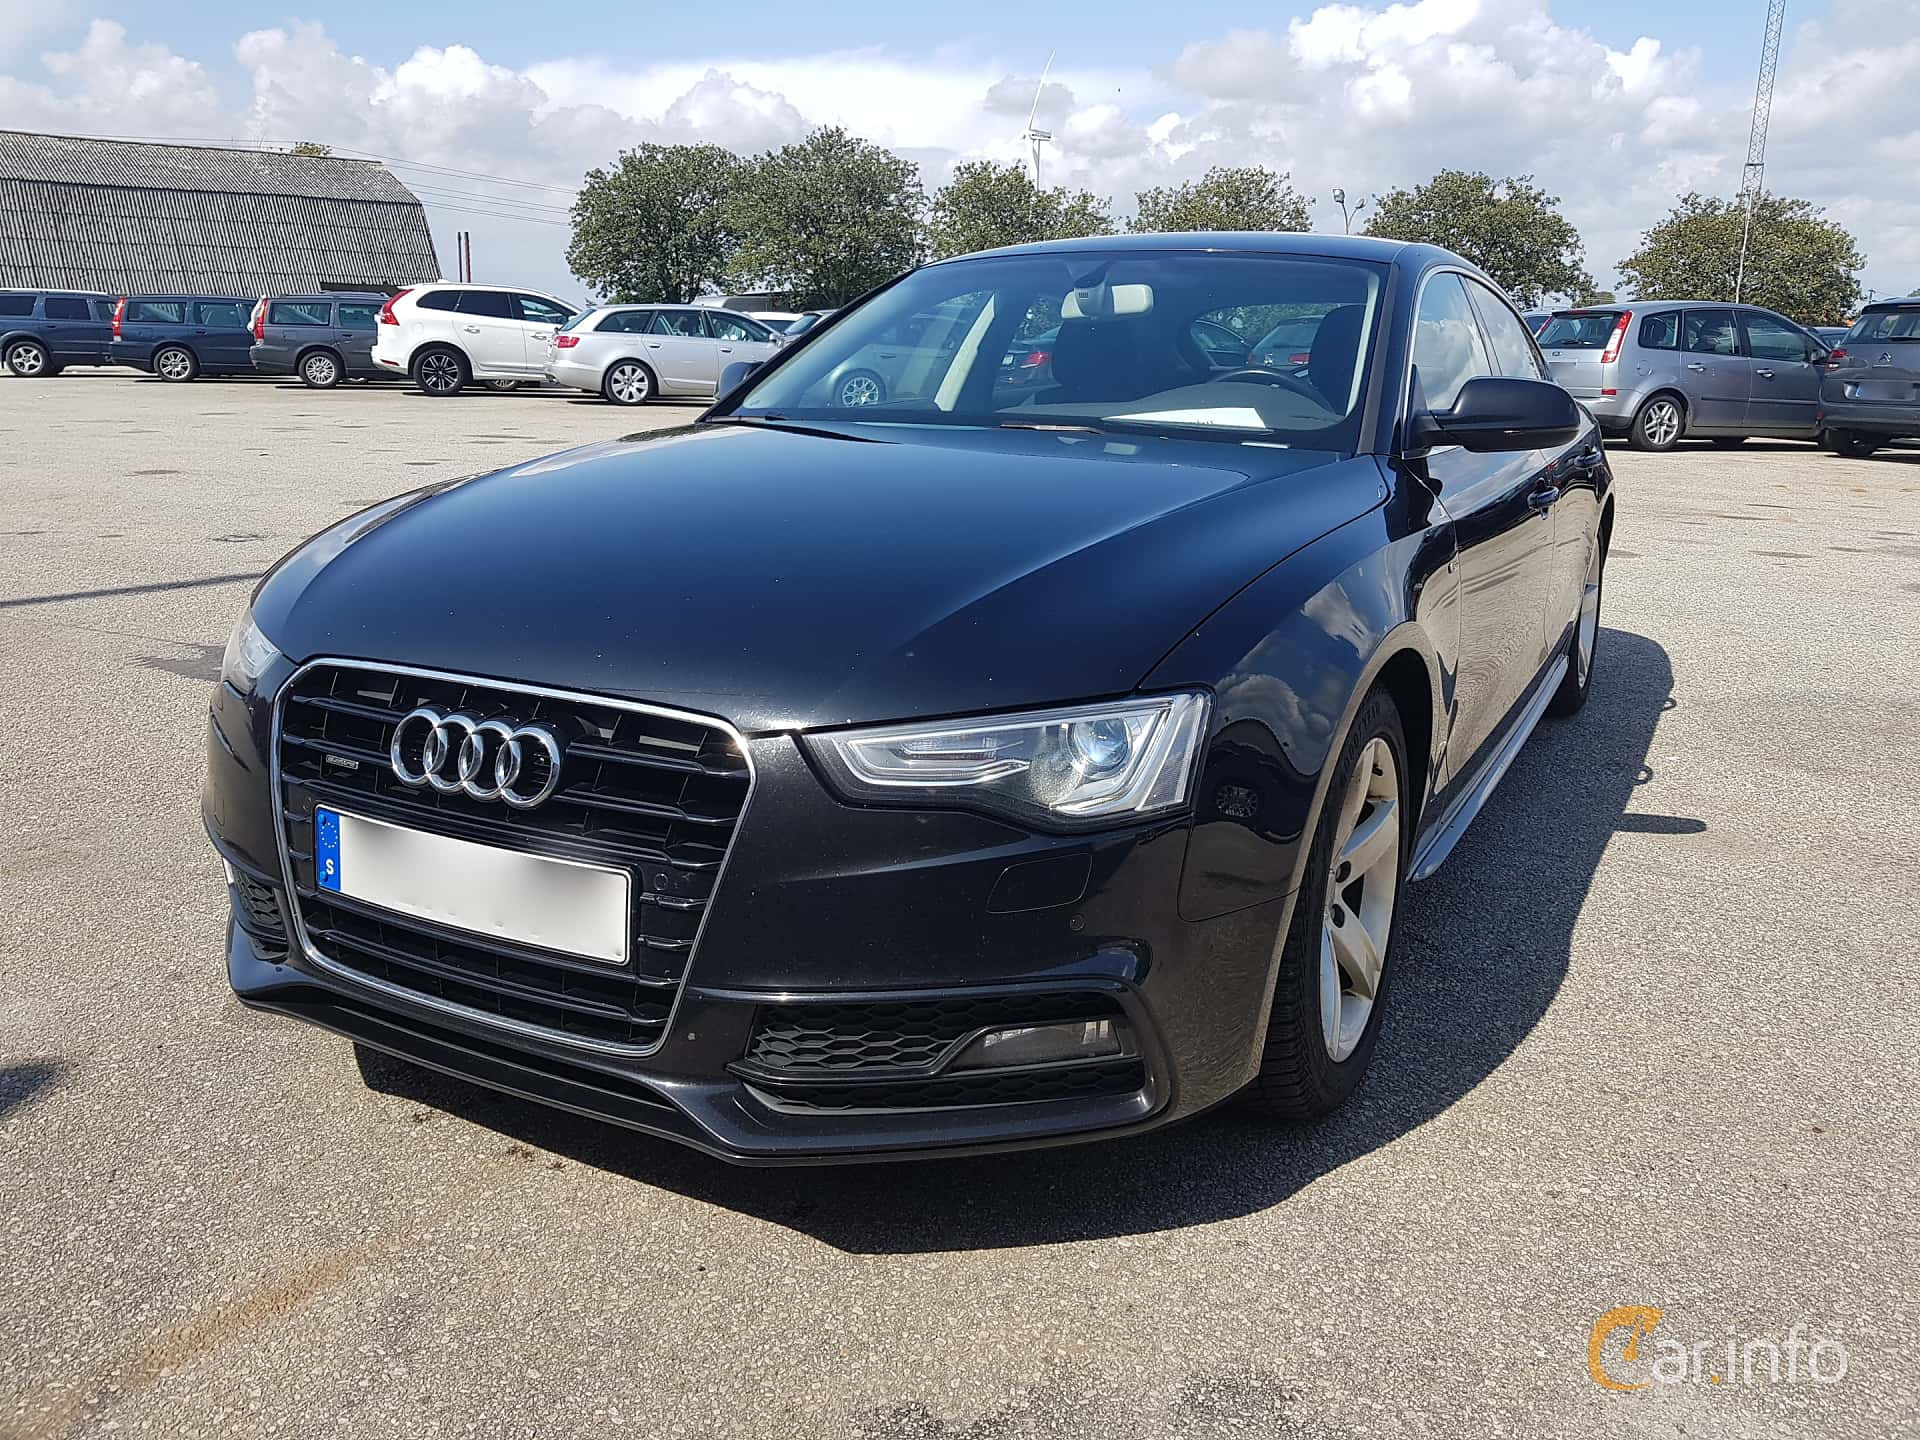 Front/Side  of Audi A5 Sportback 2.0 TDI clean diesel quattro  S Tronic, 190ps, 2016